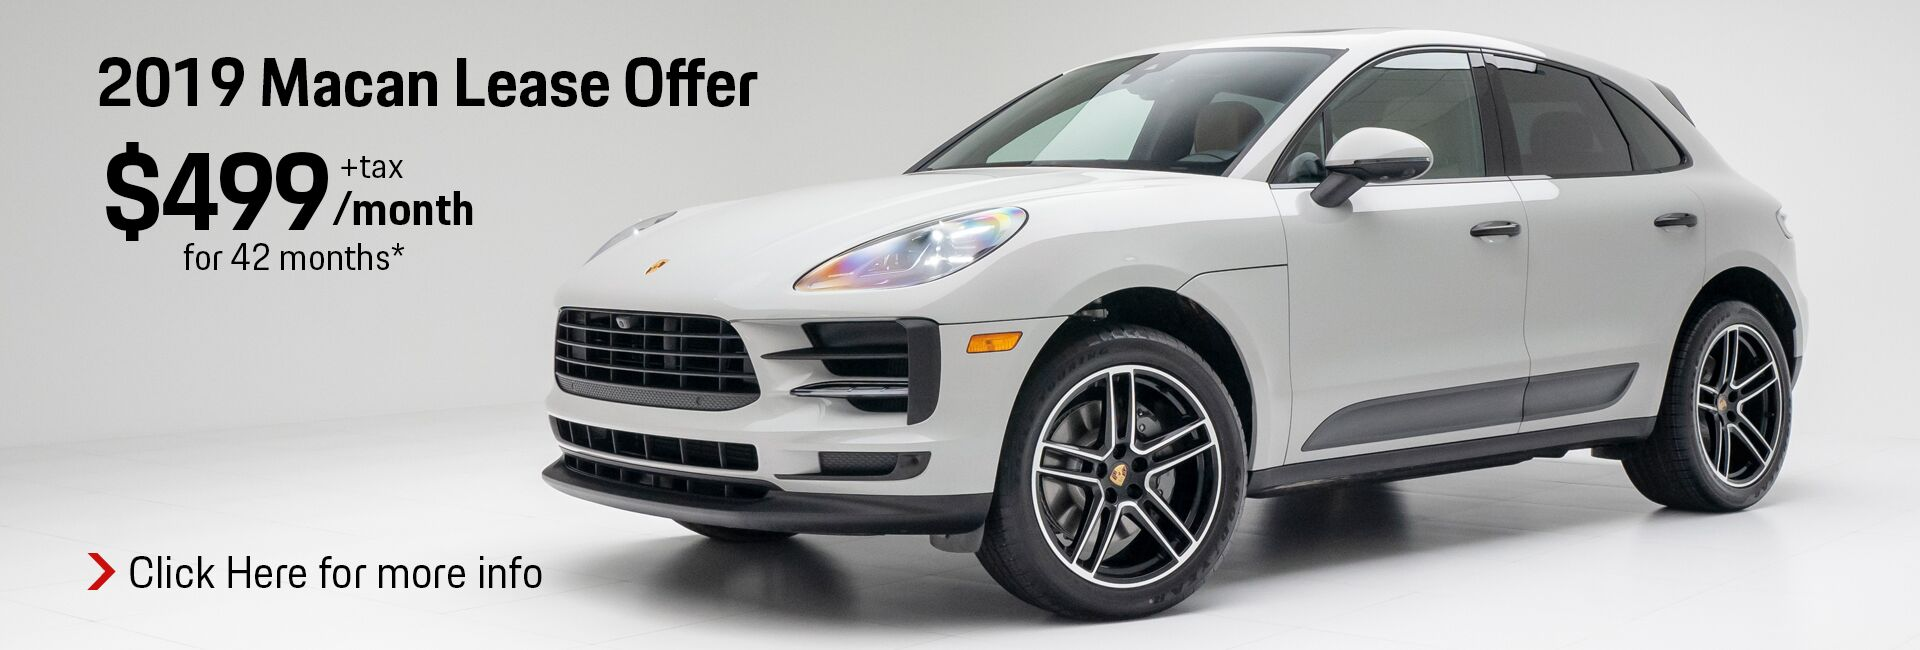 September 2019 Macan Lease Offer